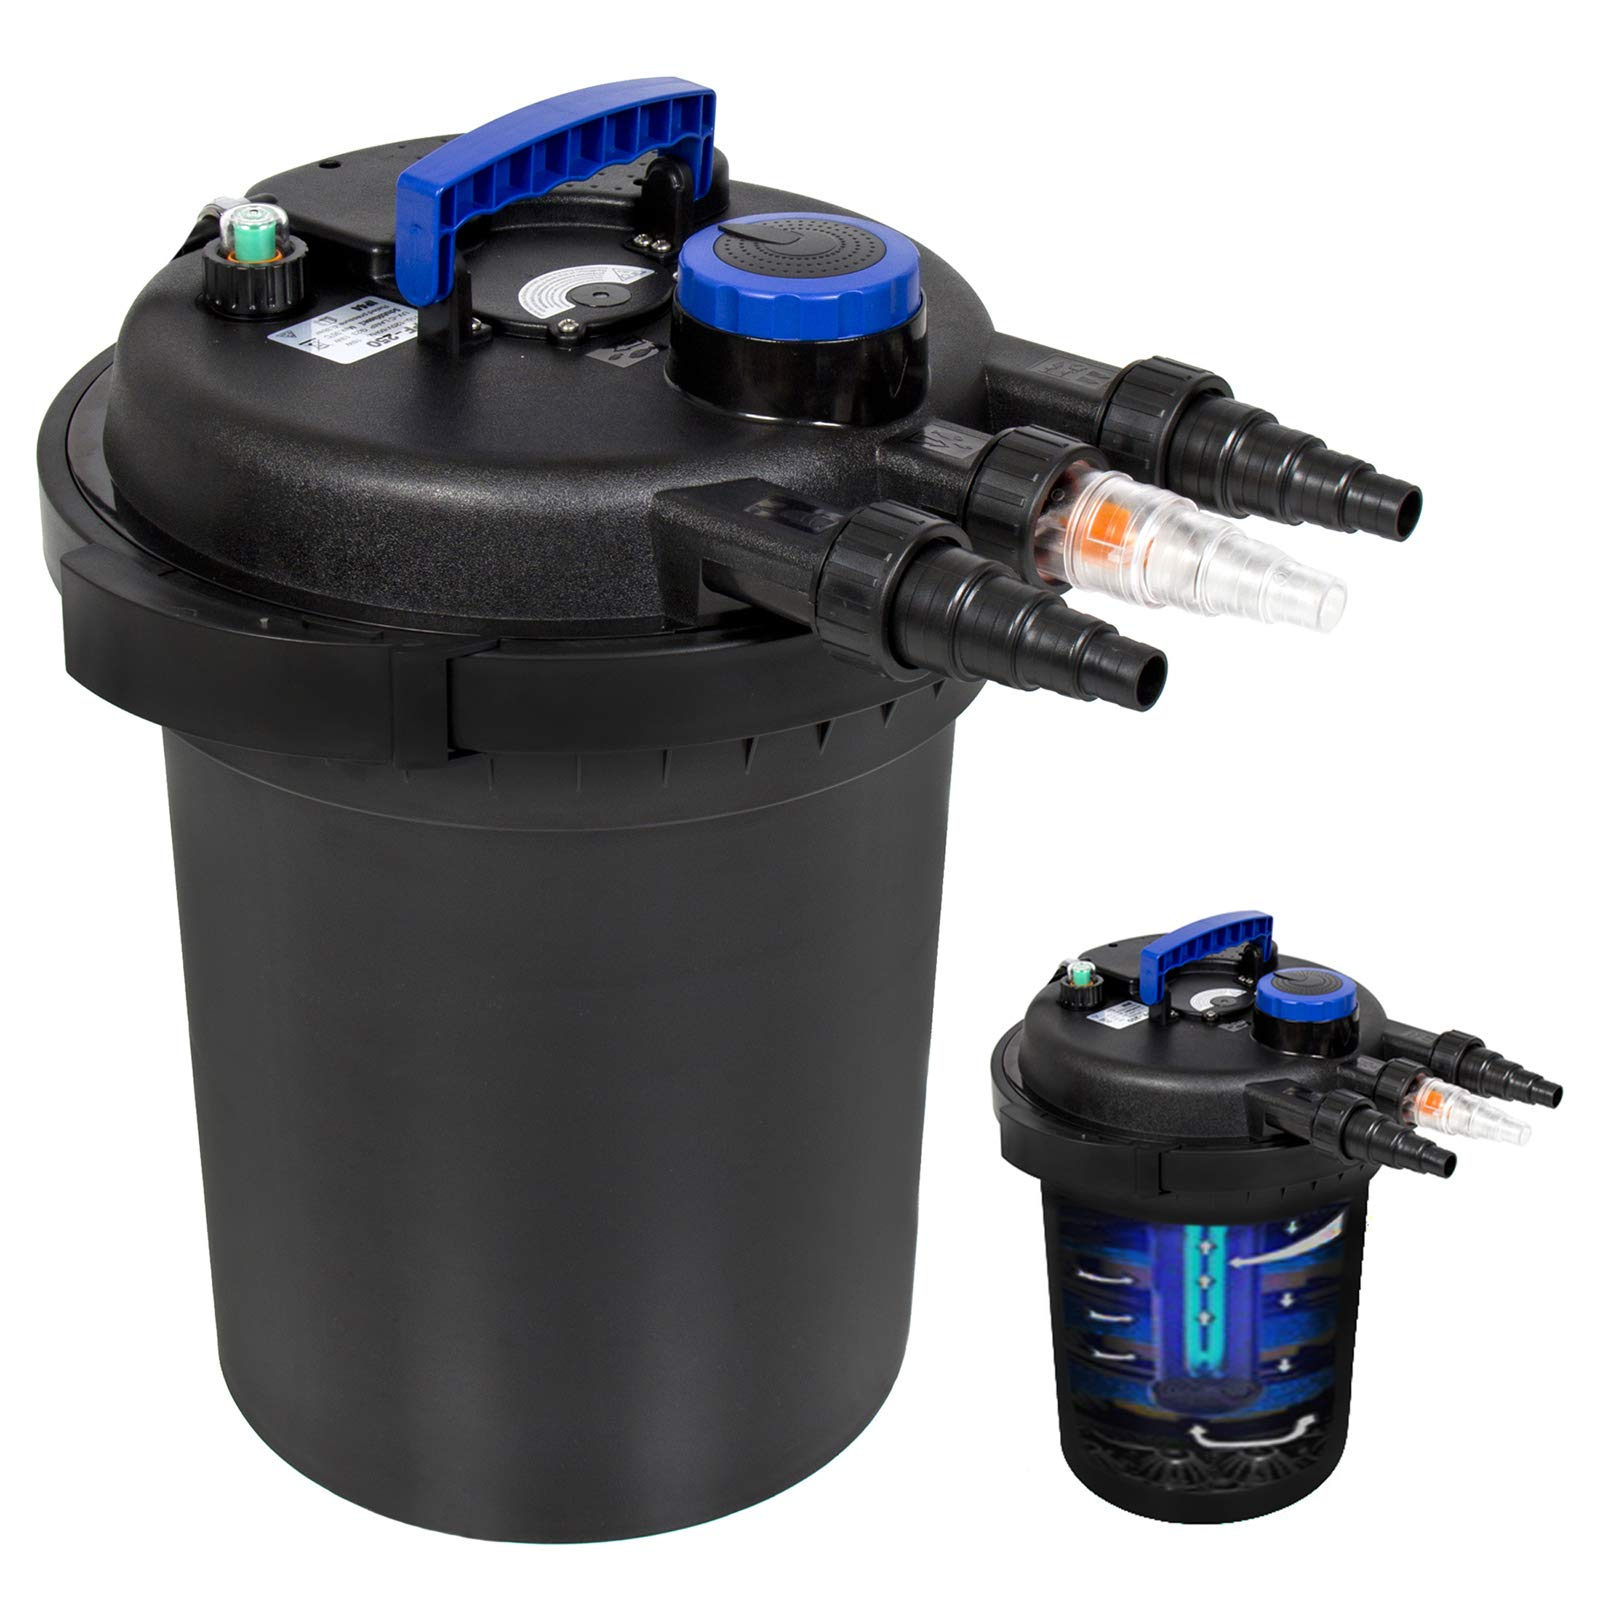 Best Choice Products 4000L Pressure Bio Filter for Pond w/ 13W UV Sterilizer Purifier Light, Flow Indicator - Black/Blue by Best Choice Products